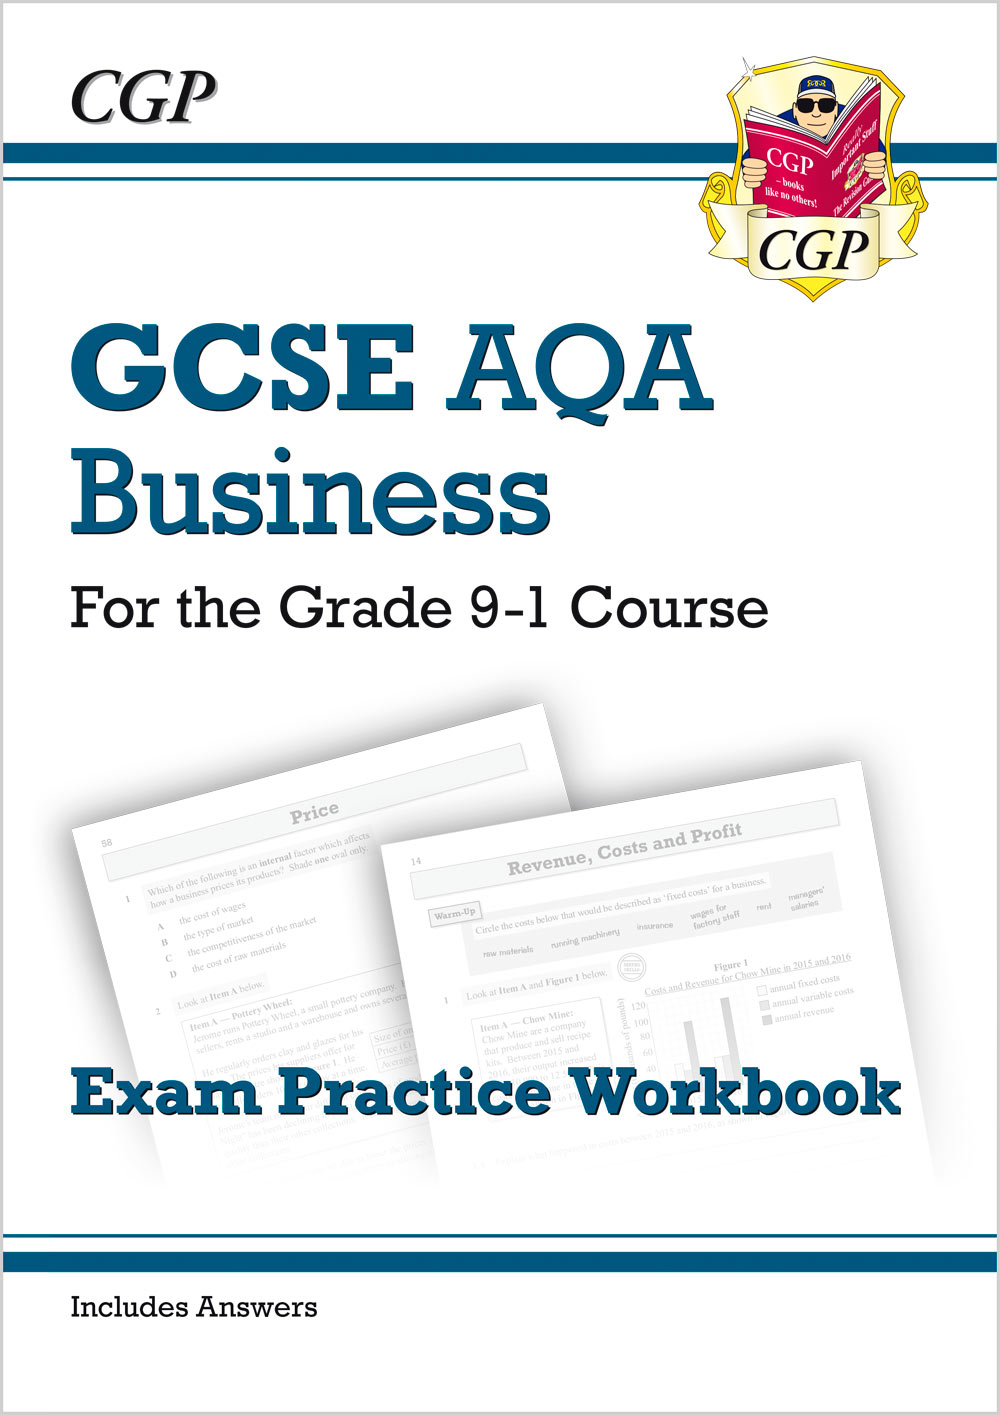 BUAQ41 - New GCSE Business AQA Exam Practice Workbook - for the Grade 9-1 Course (includes Answers)